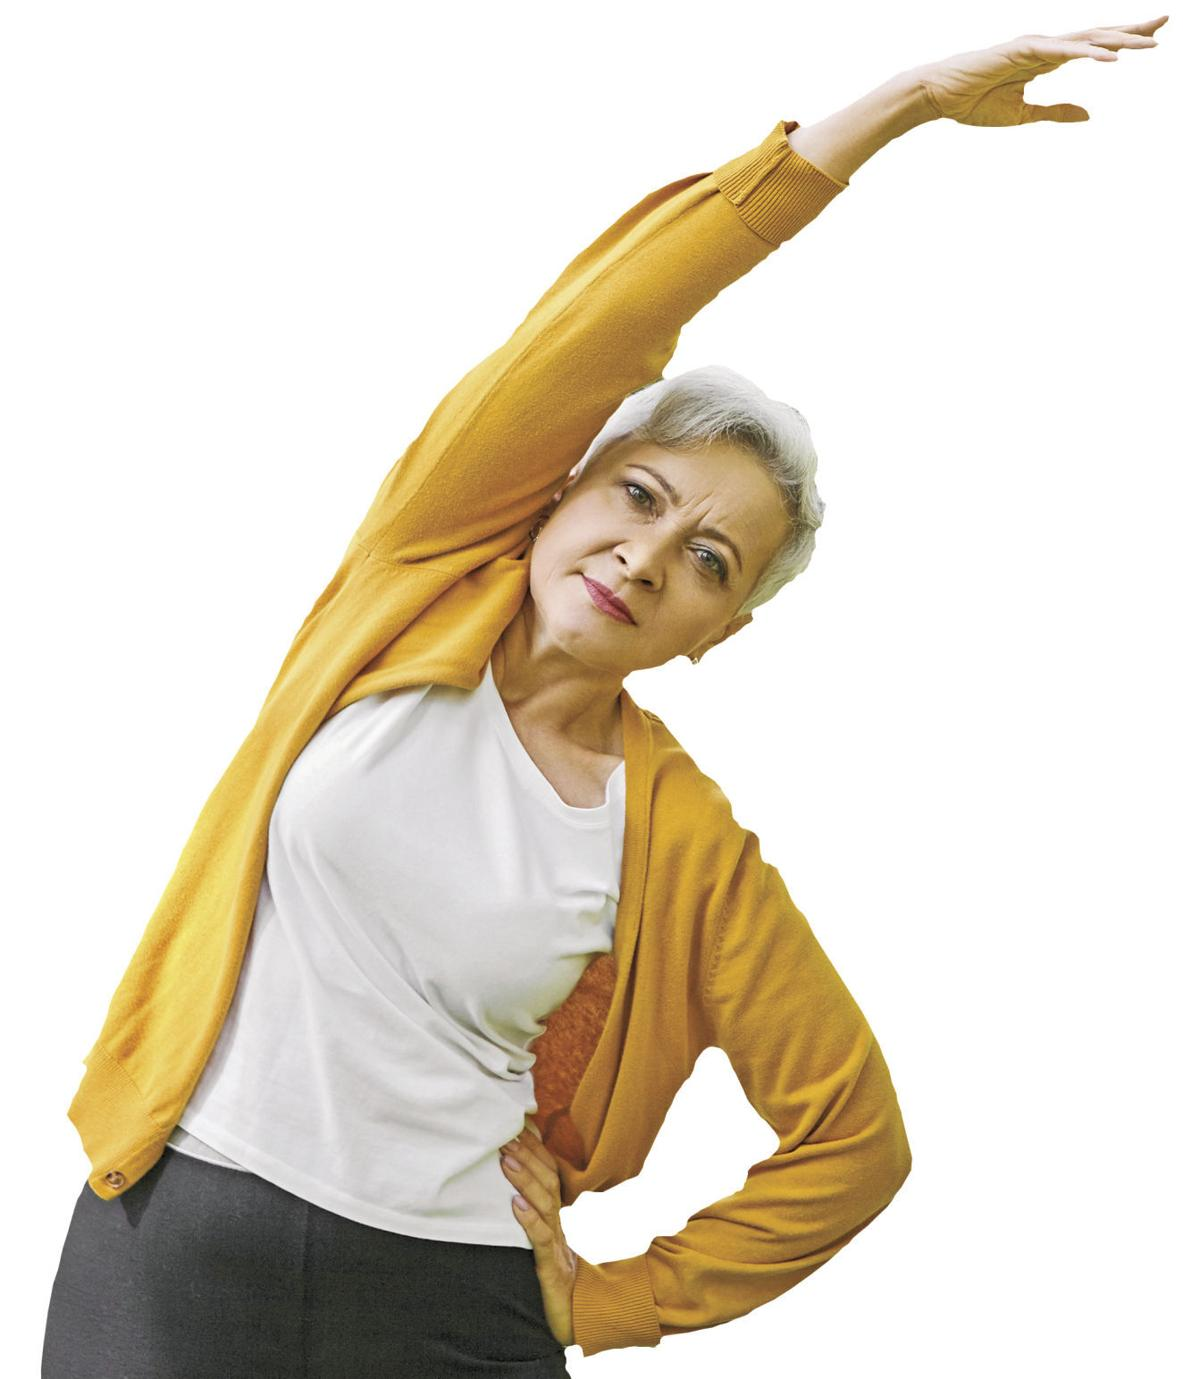 Energy, health, well being and retirement concept. Beautiful sporty senior woman with short hair doing side bend, keeping arm outstretched. Retired female exercising outdoors in park or forest